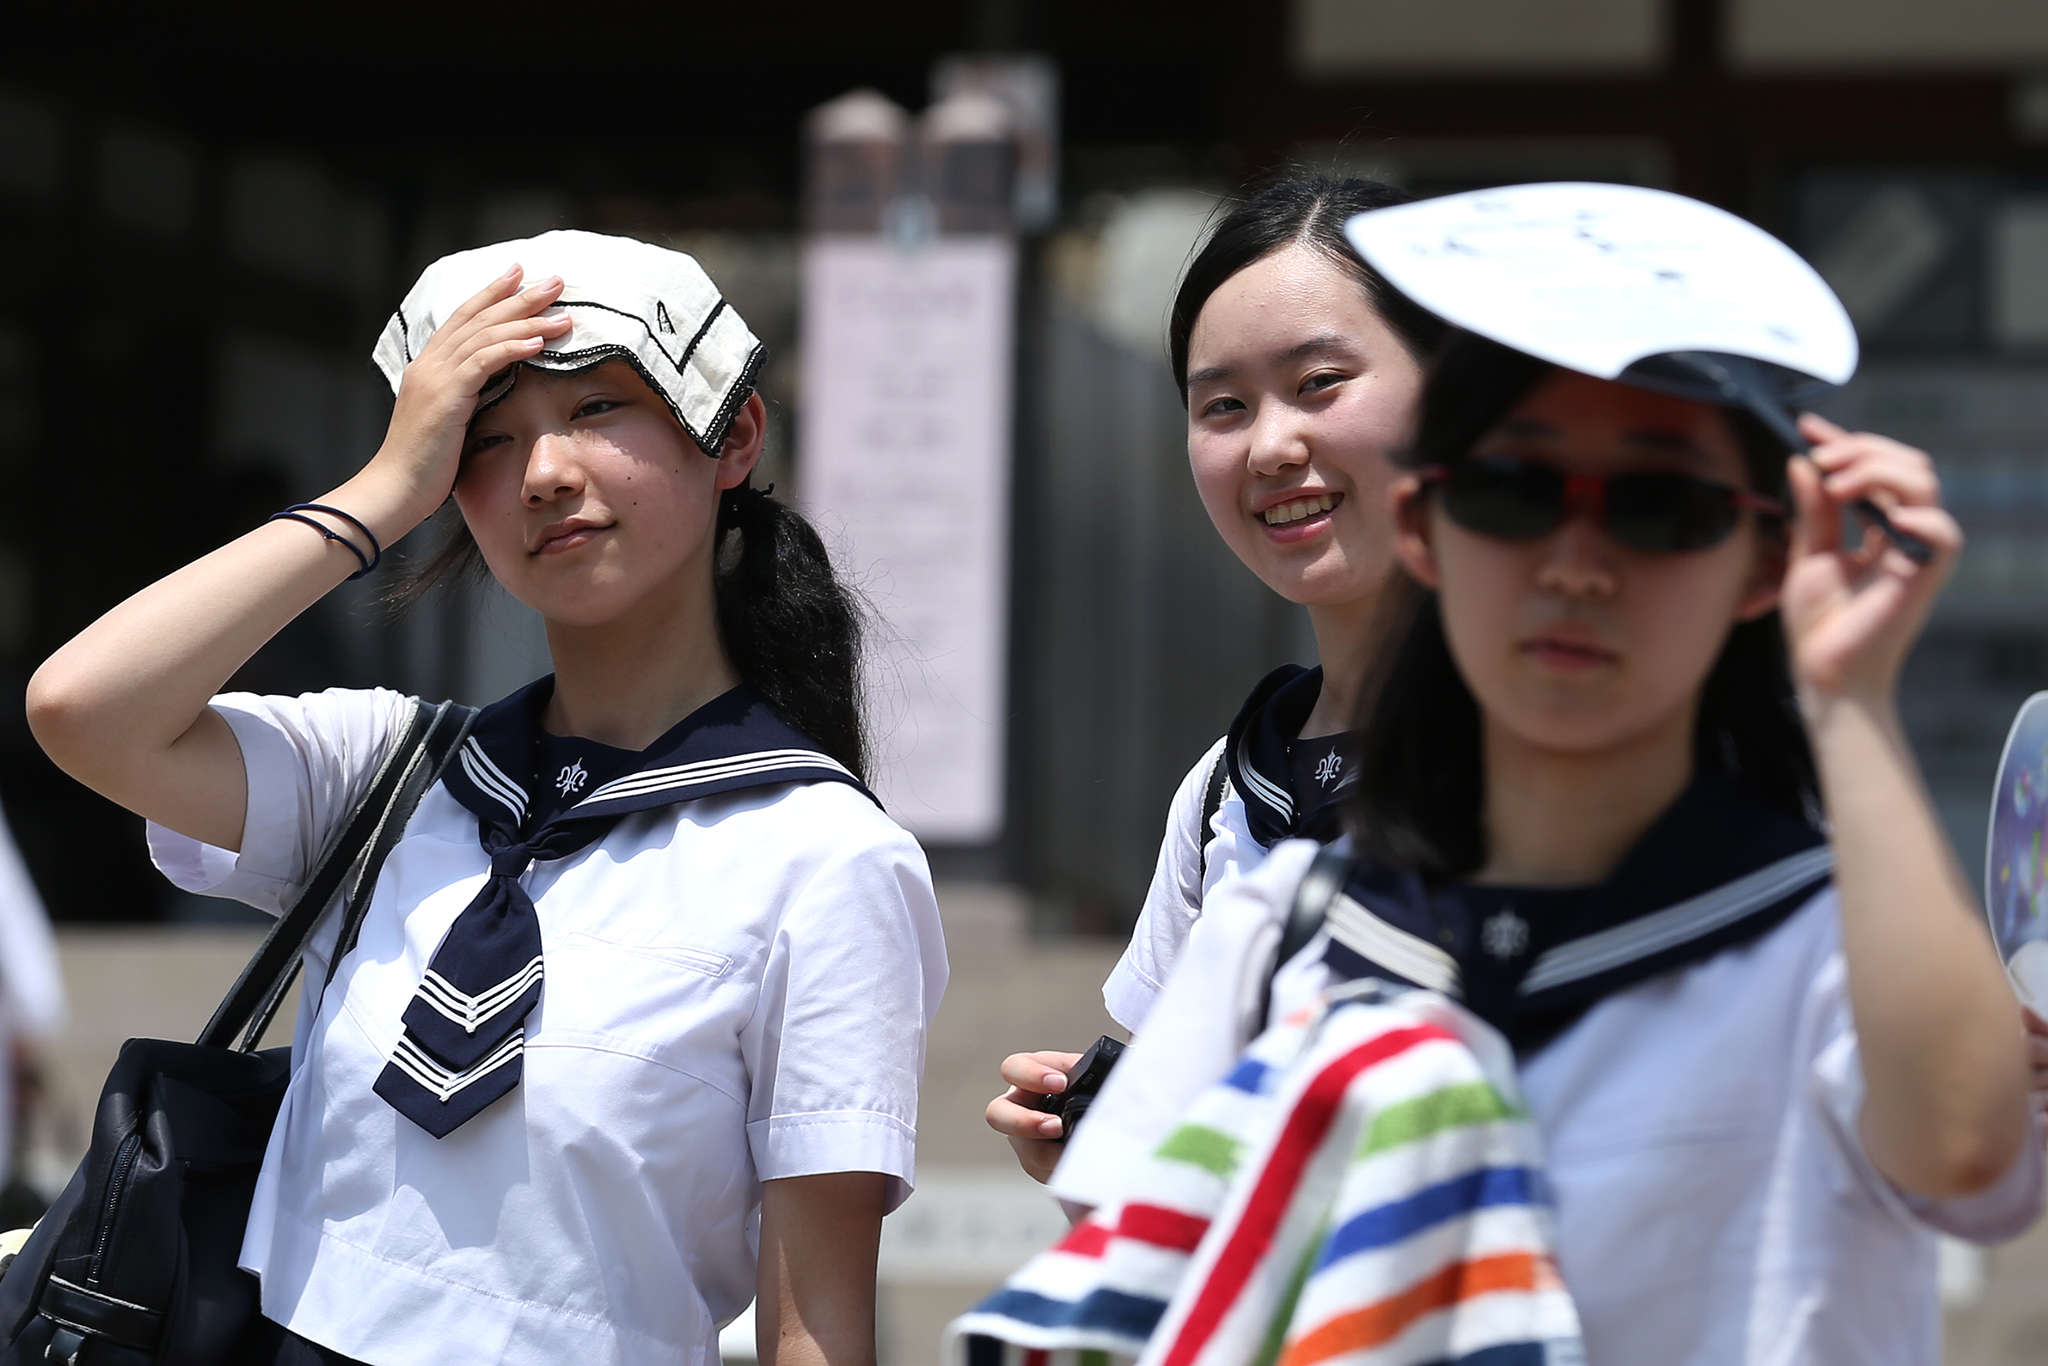 Japanese high school students use a handkerchief to cover their heads from sunlight as city temperature reach 36 degree celsius in Himeji, Japan. A natural disaster has been declared as thousands of people have been taken to hospital with heat stroke as the death toll continues to rise in Japan following the record-breaking heat wave. Photo: Buddhika Weerasinghe/Getty Images